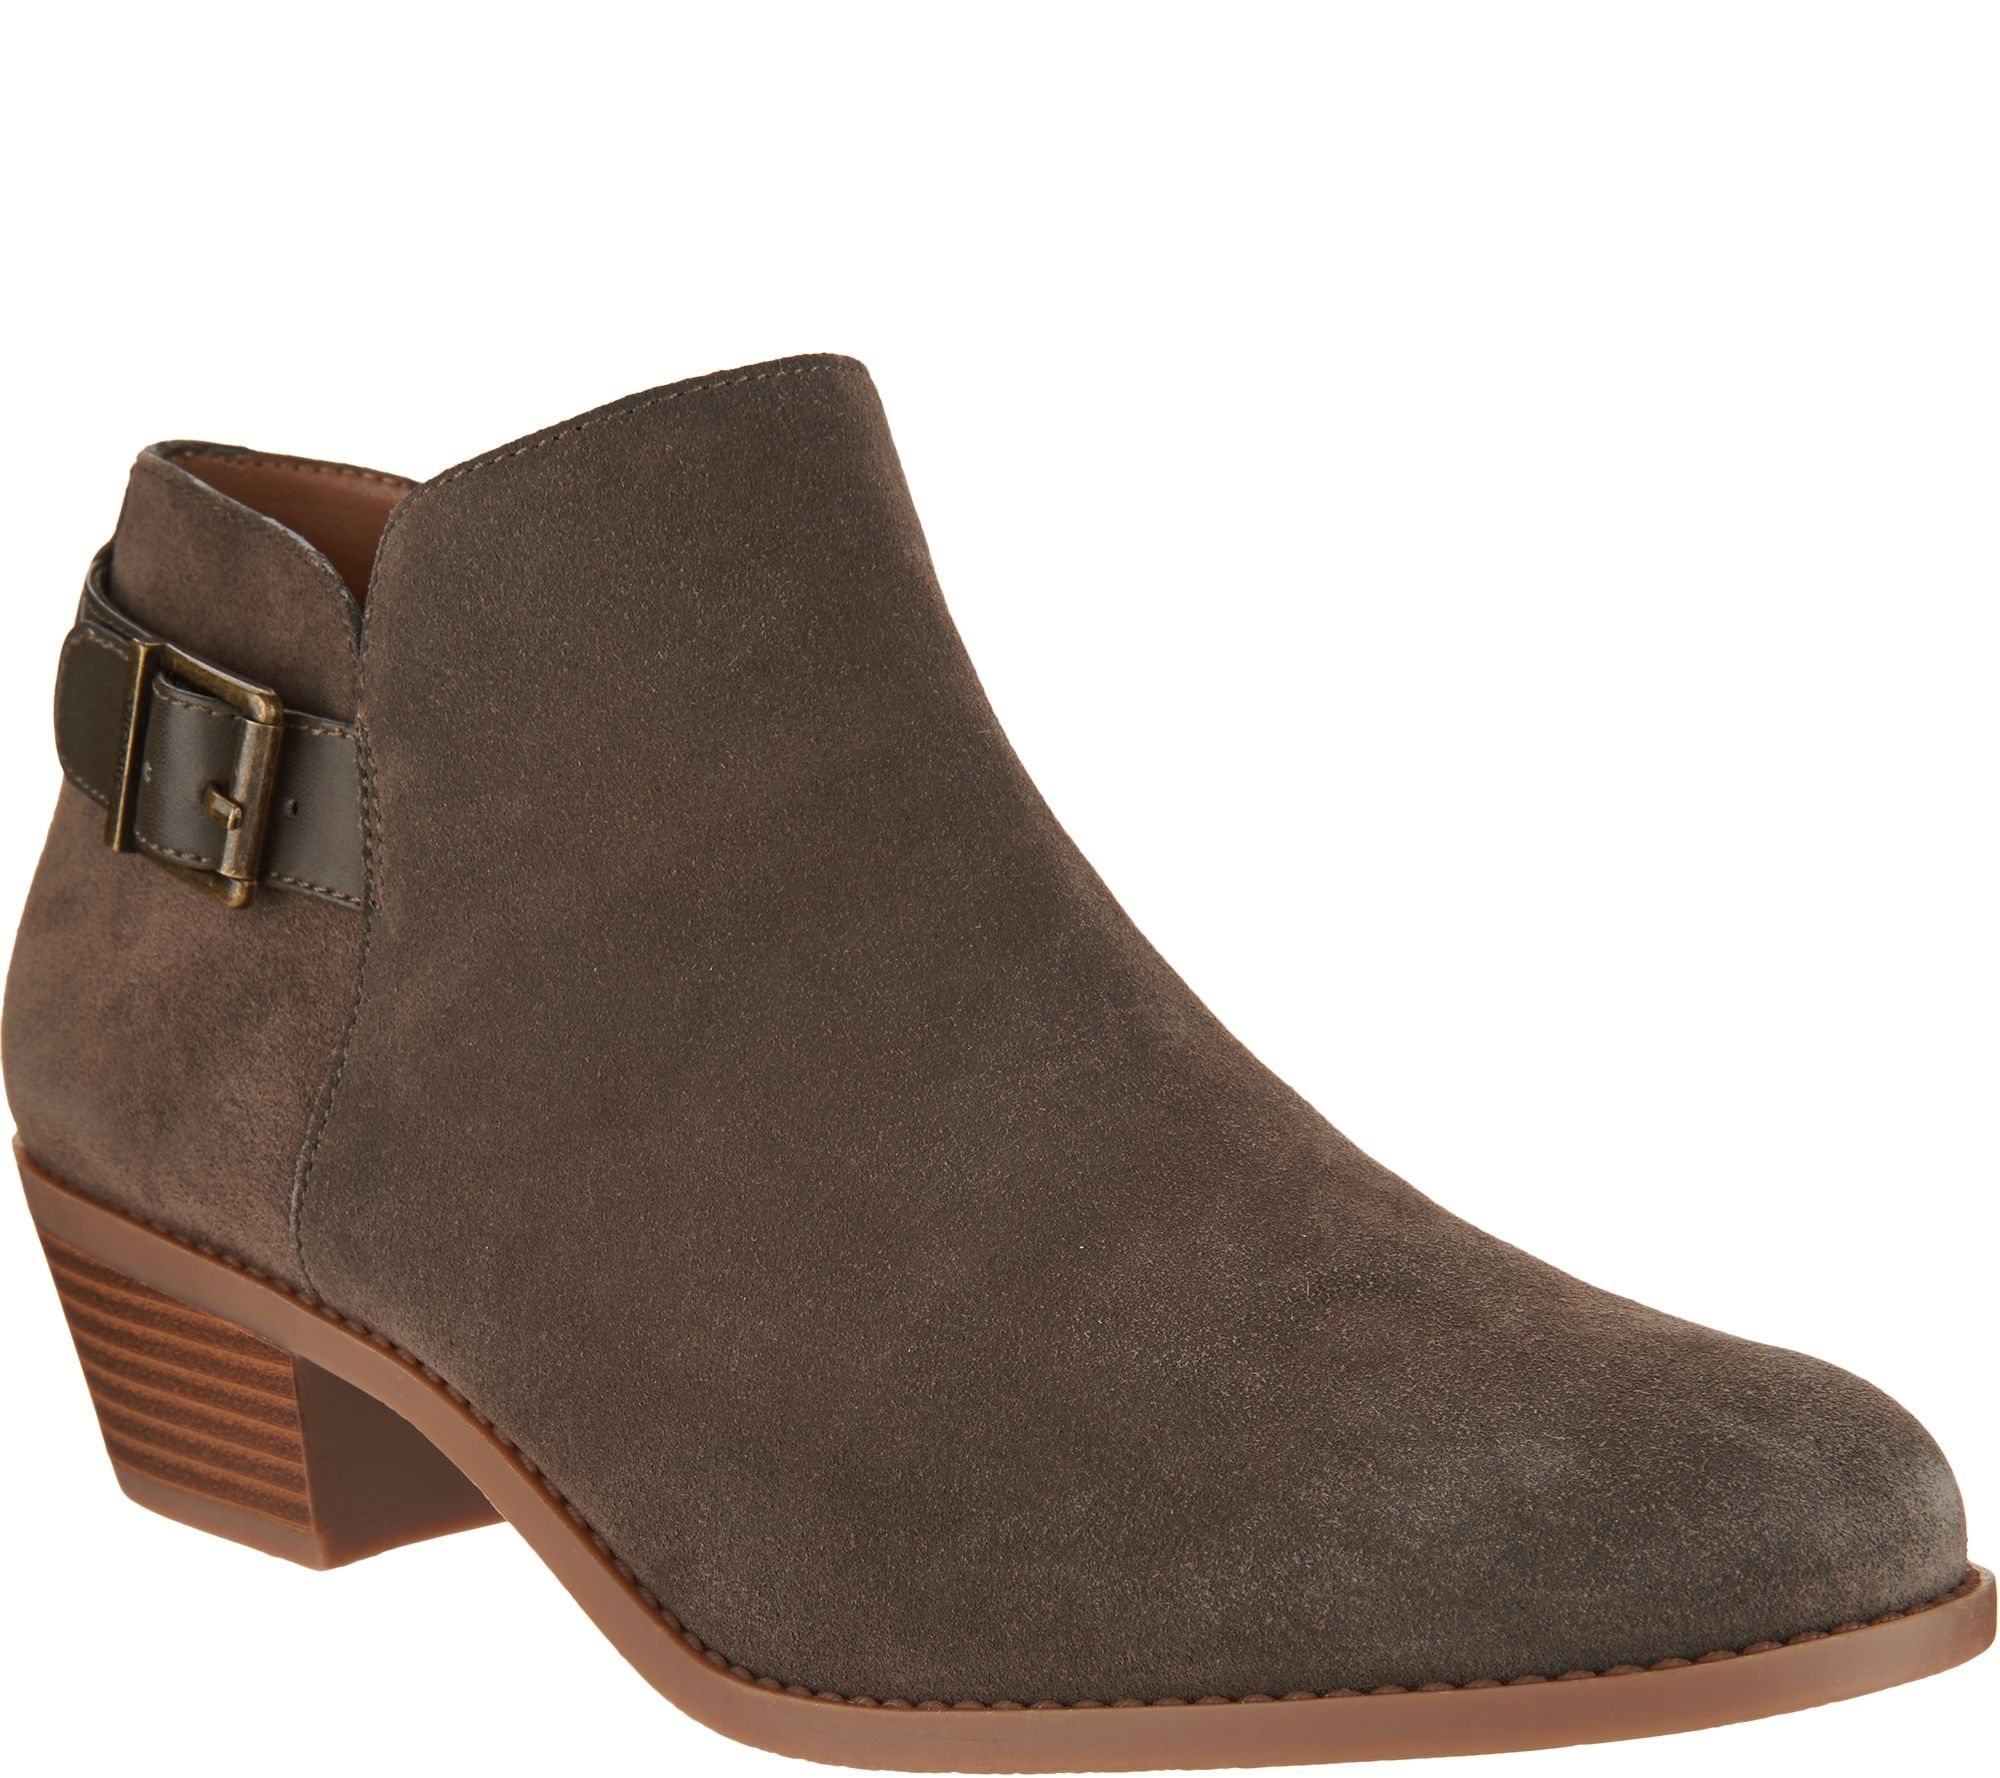 Boots, Stacked heel ankle boots, Suede